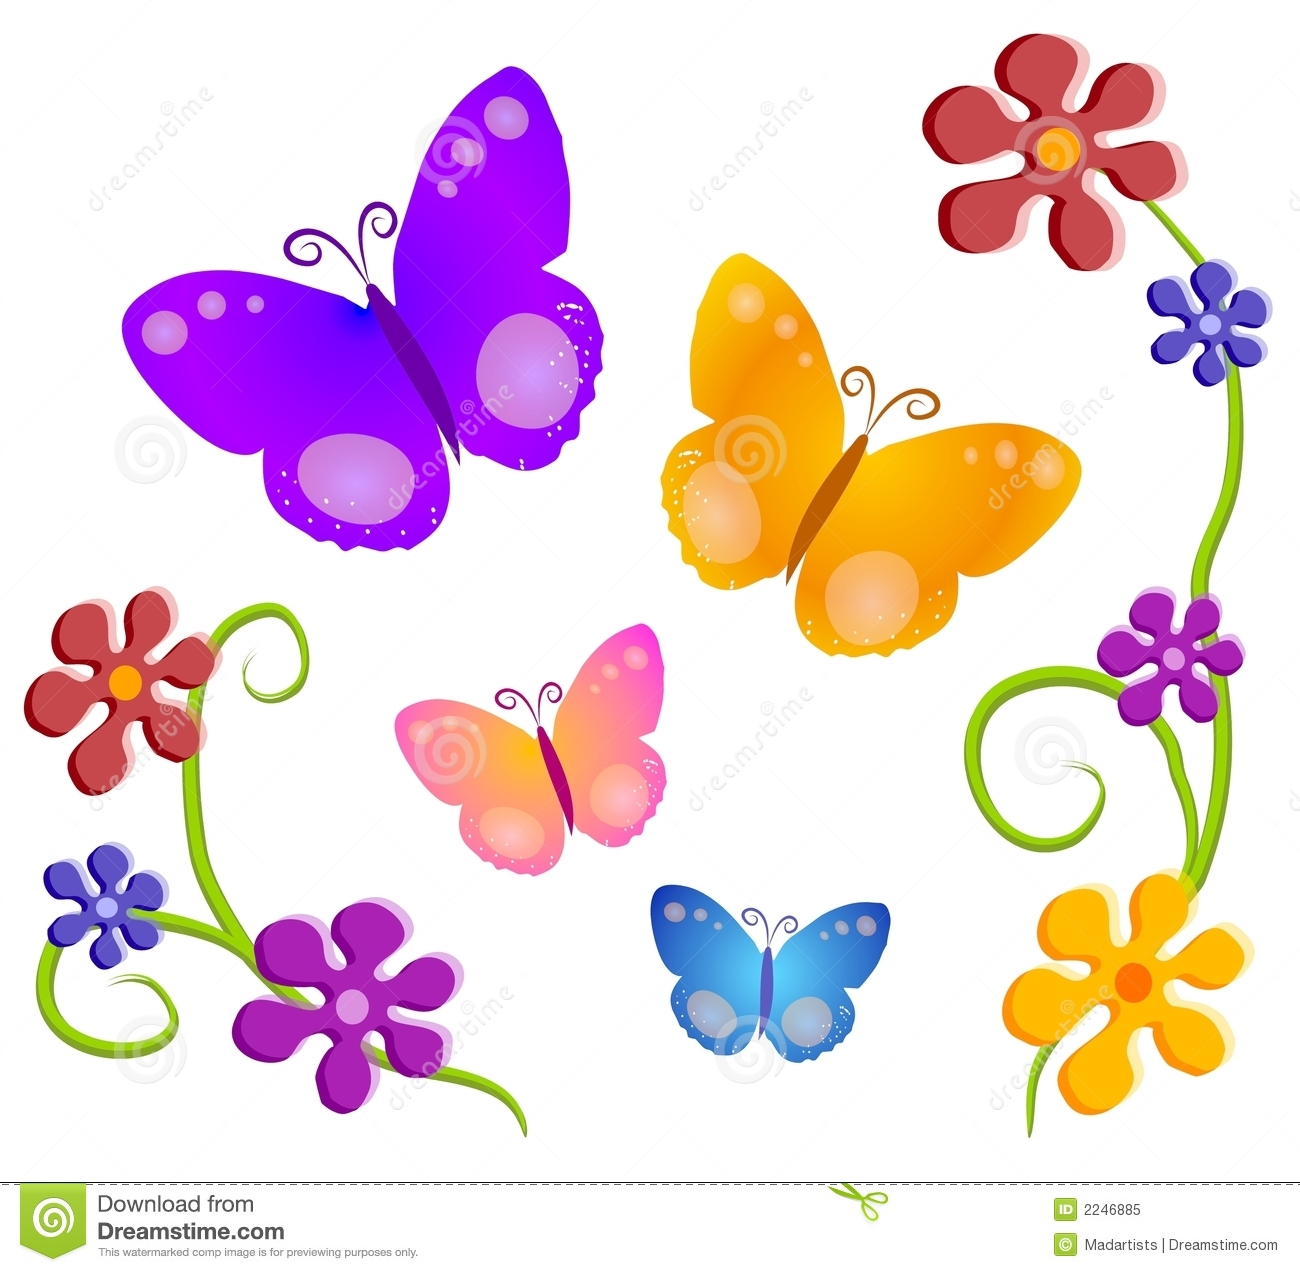 Butterfly and flowers clipart graphic library Free butterfly and flower clipart - ClipartFest graphic library